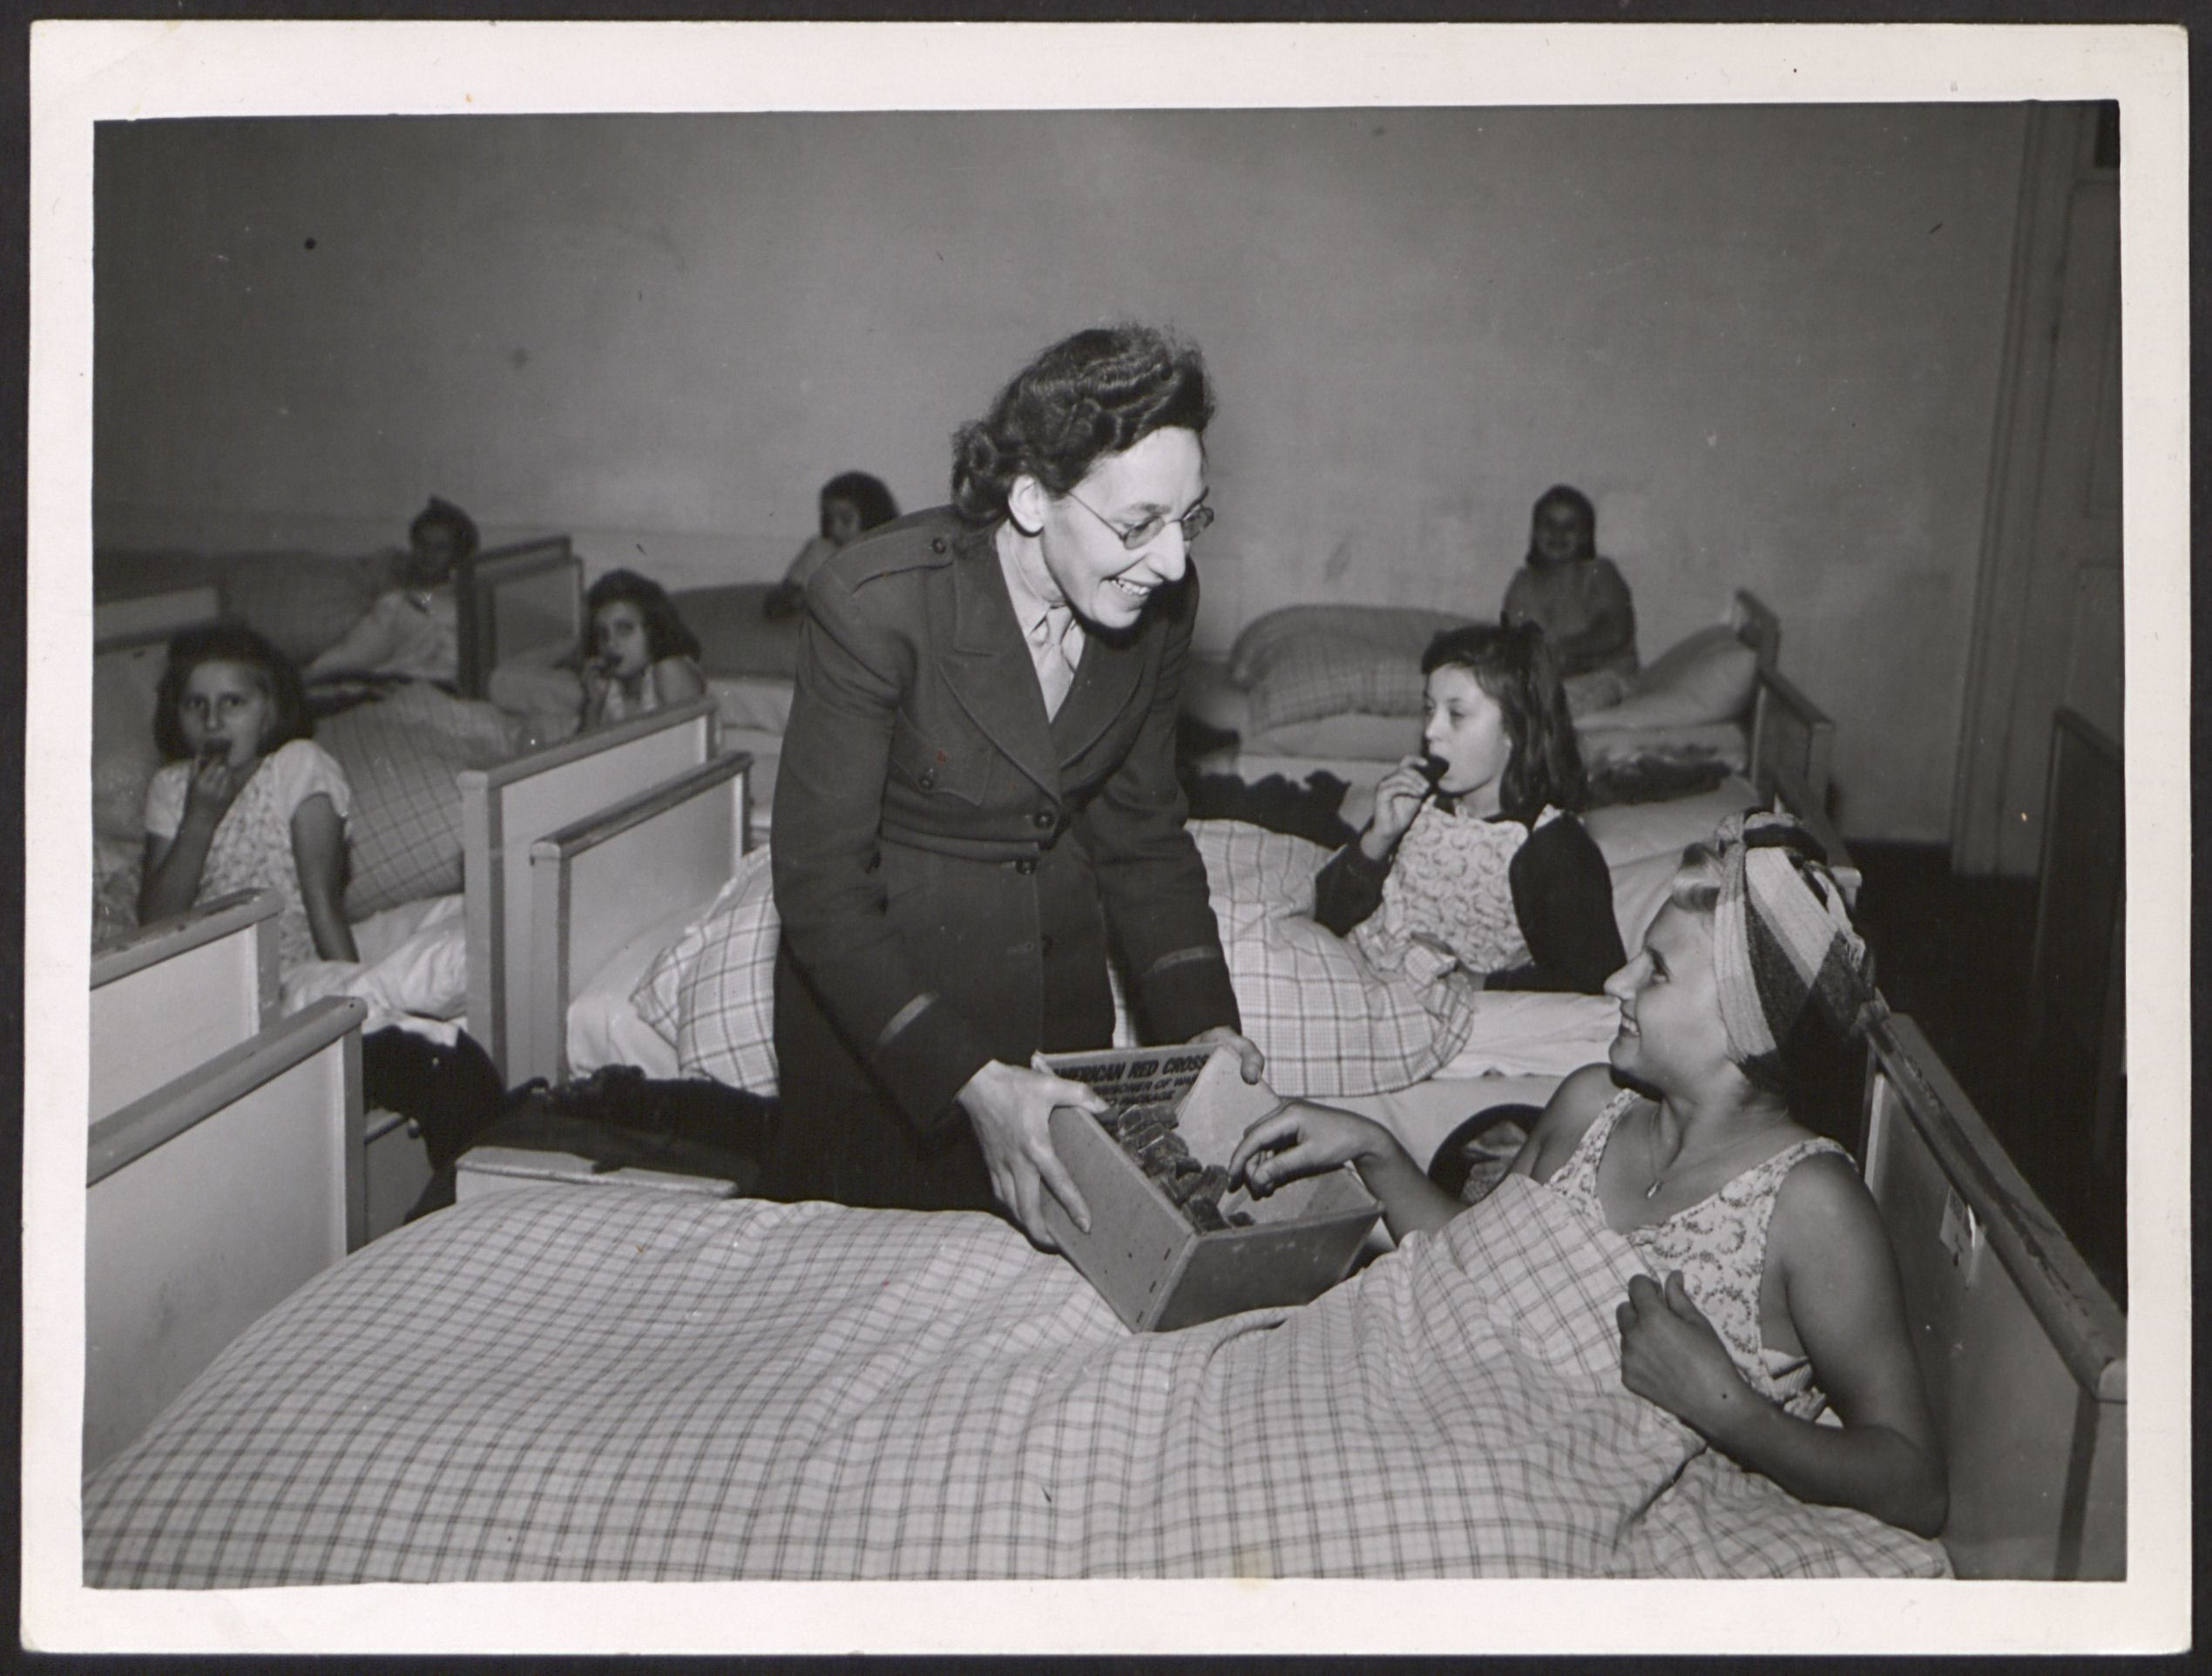 The director of the Kloster Indersdorf DP children's center  Lillian Robbins distributes chocolate to DP girls.